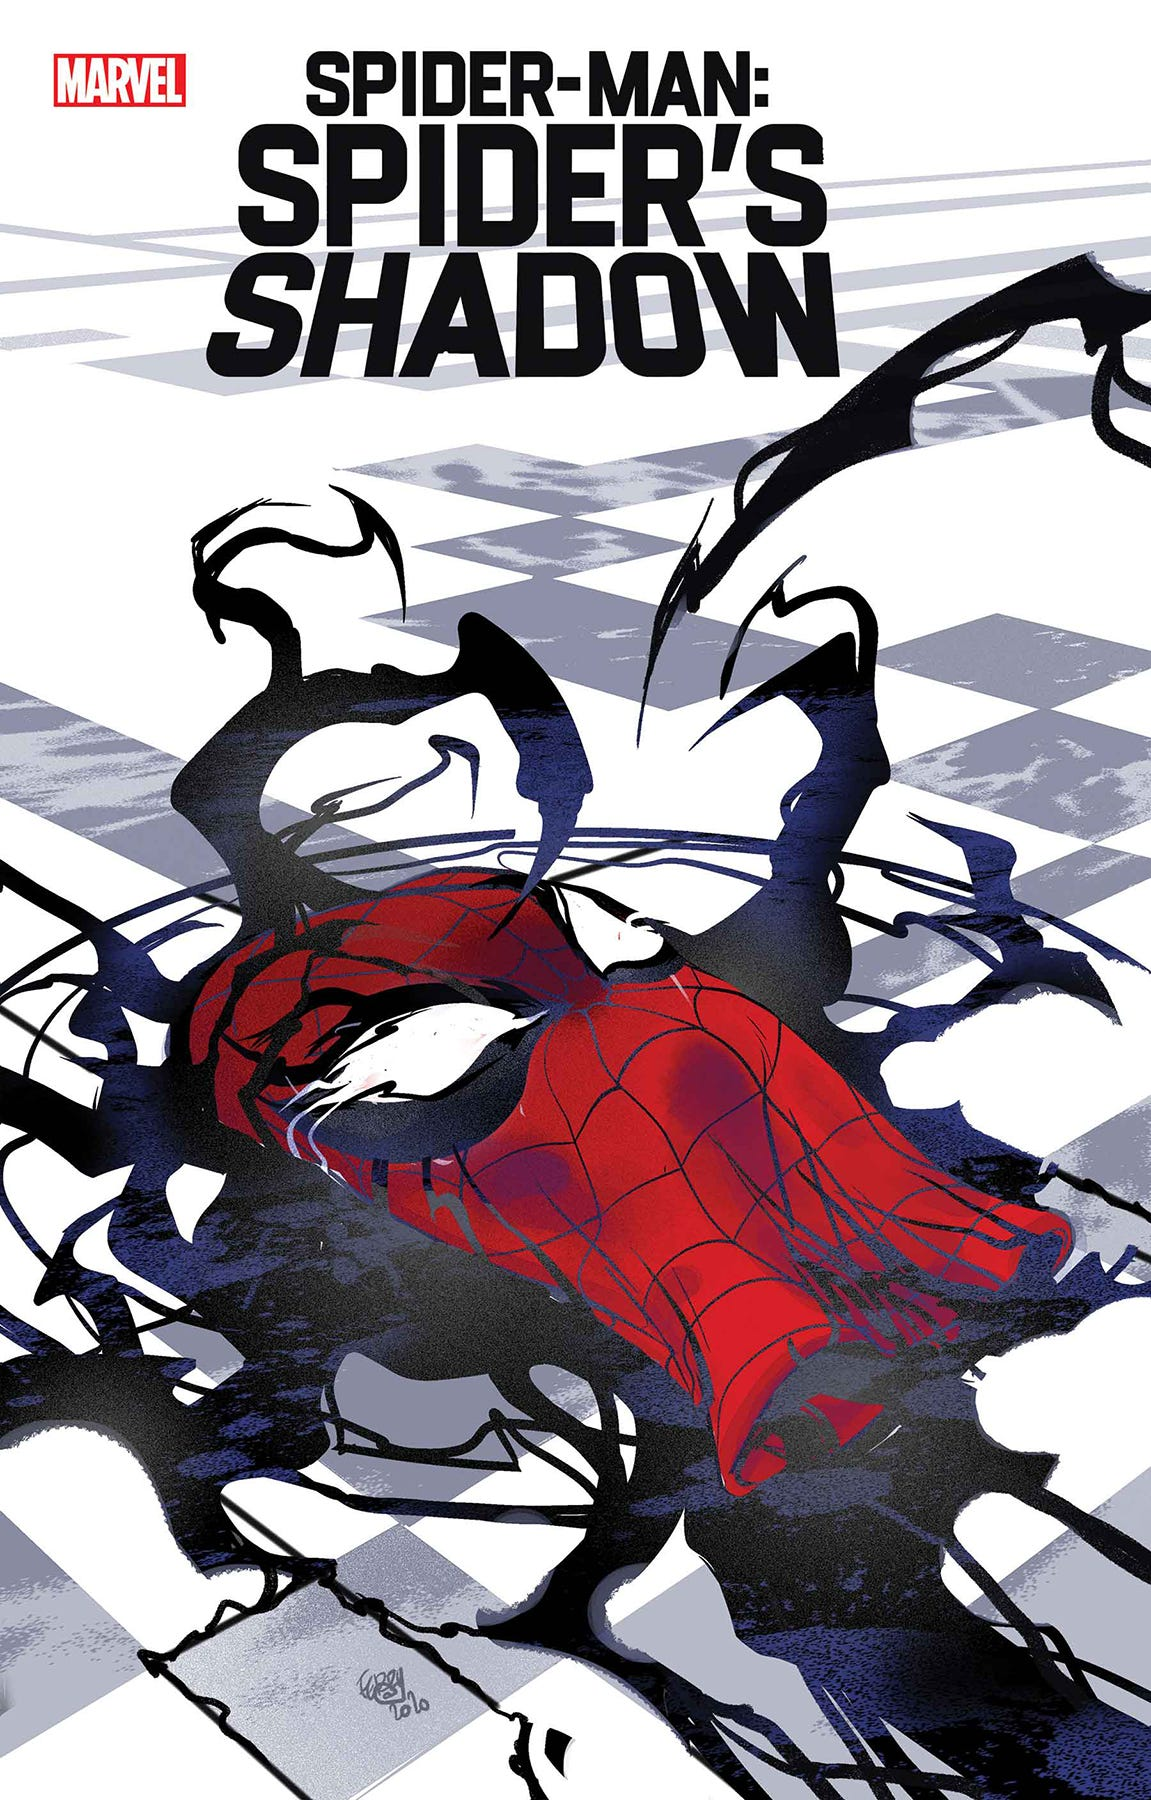 Spider-Man Spiders Shadow #1 (of 4) (Ferry Variant)